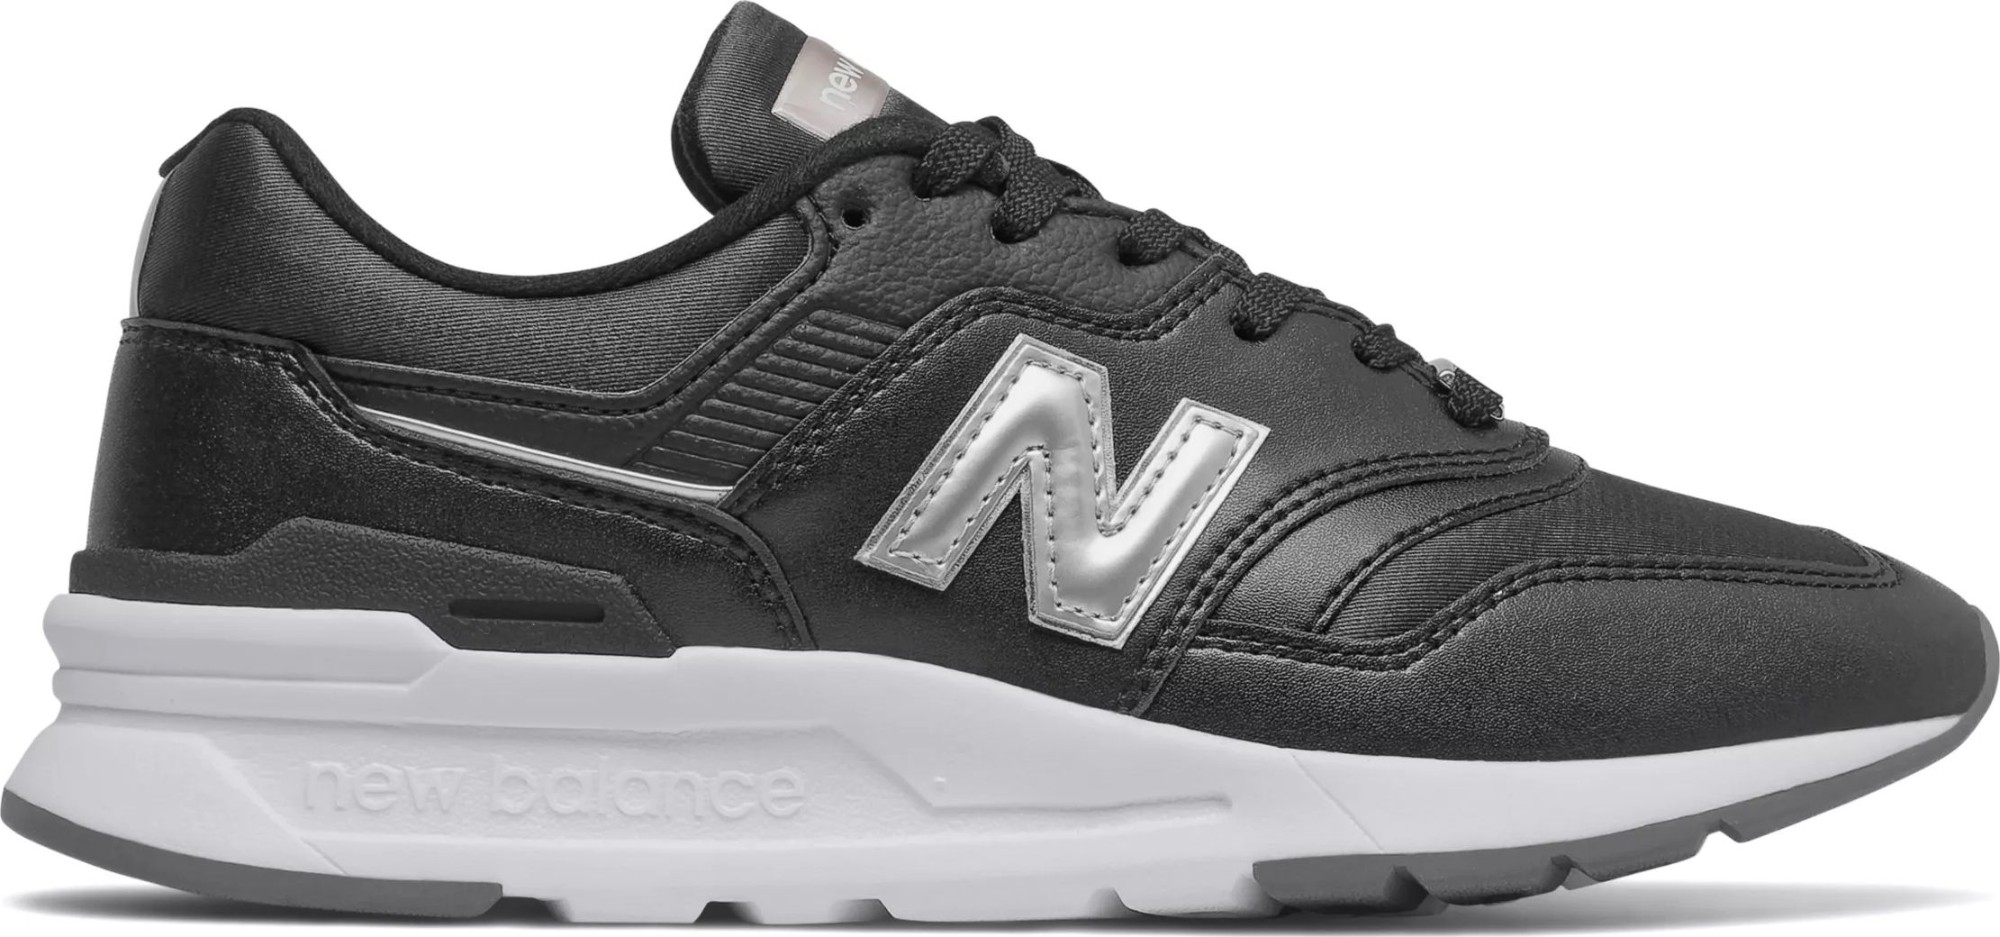 New Balance CW997 Black/White 40